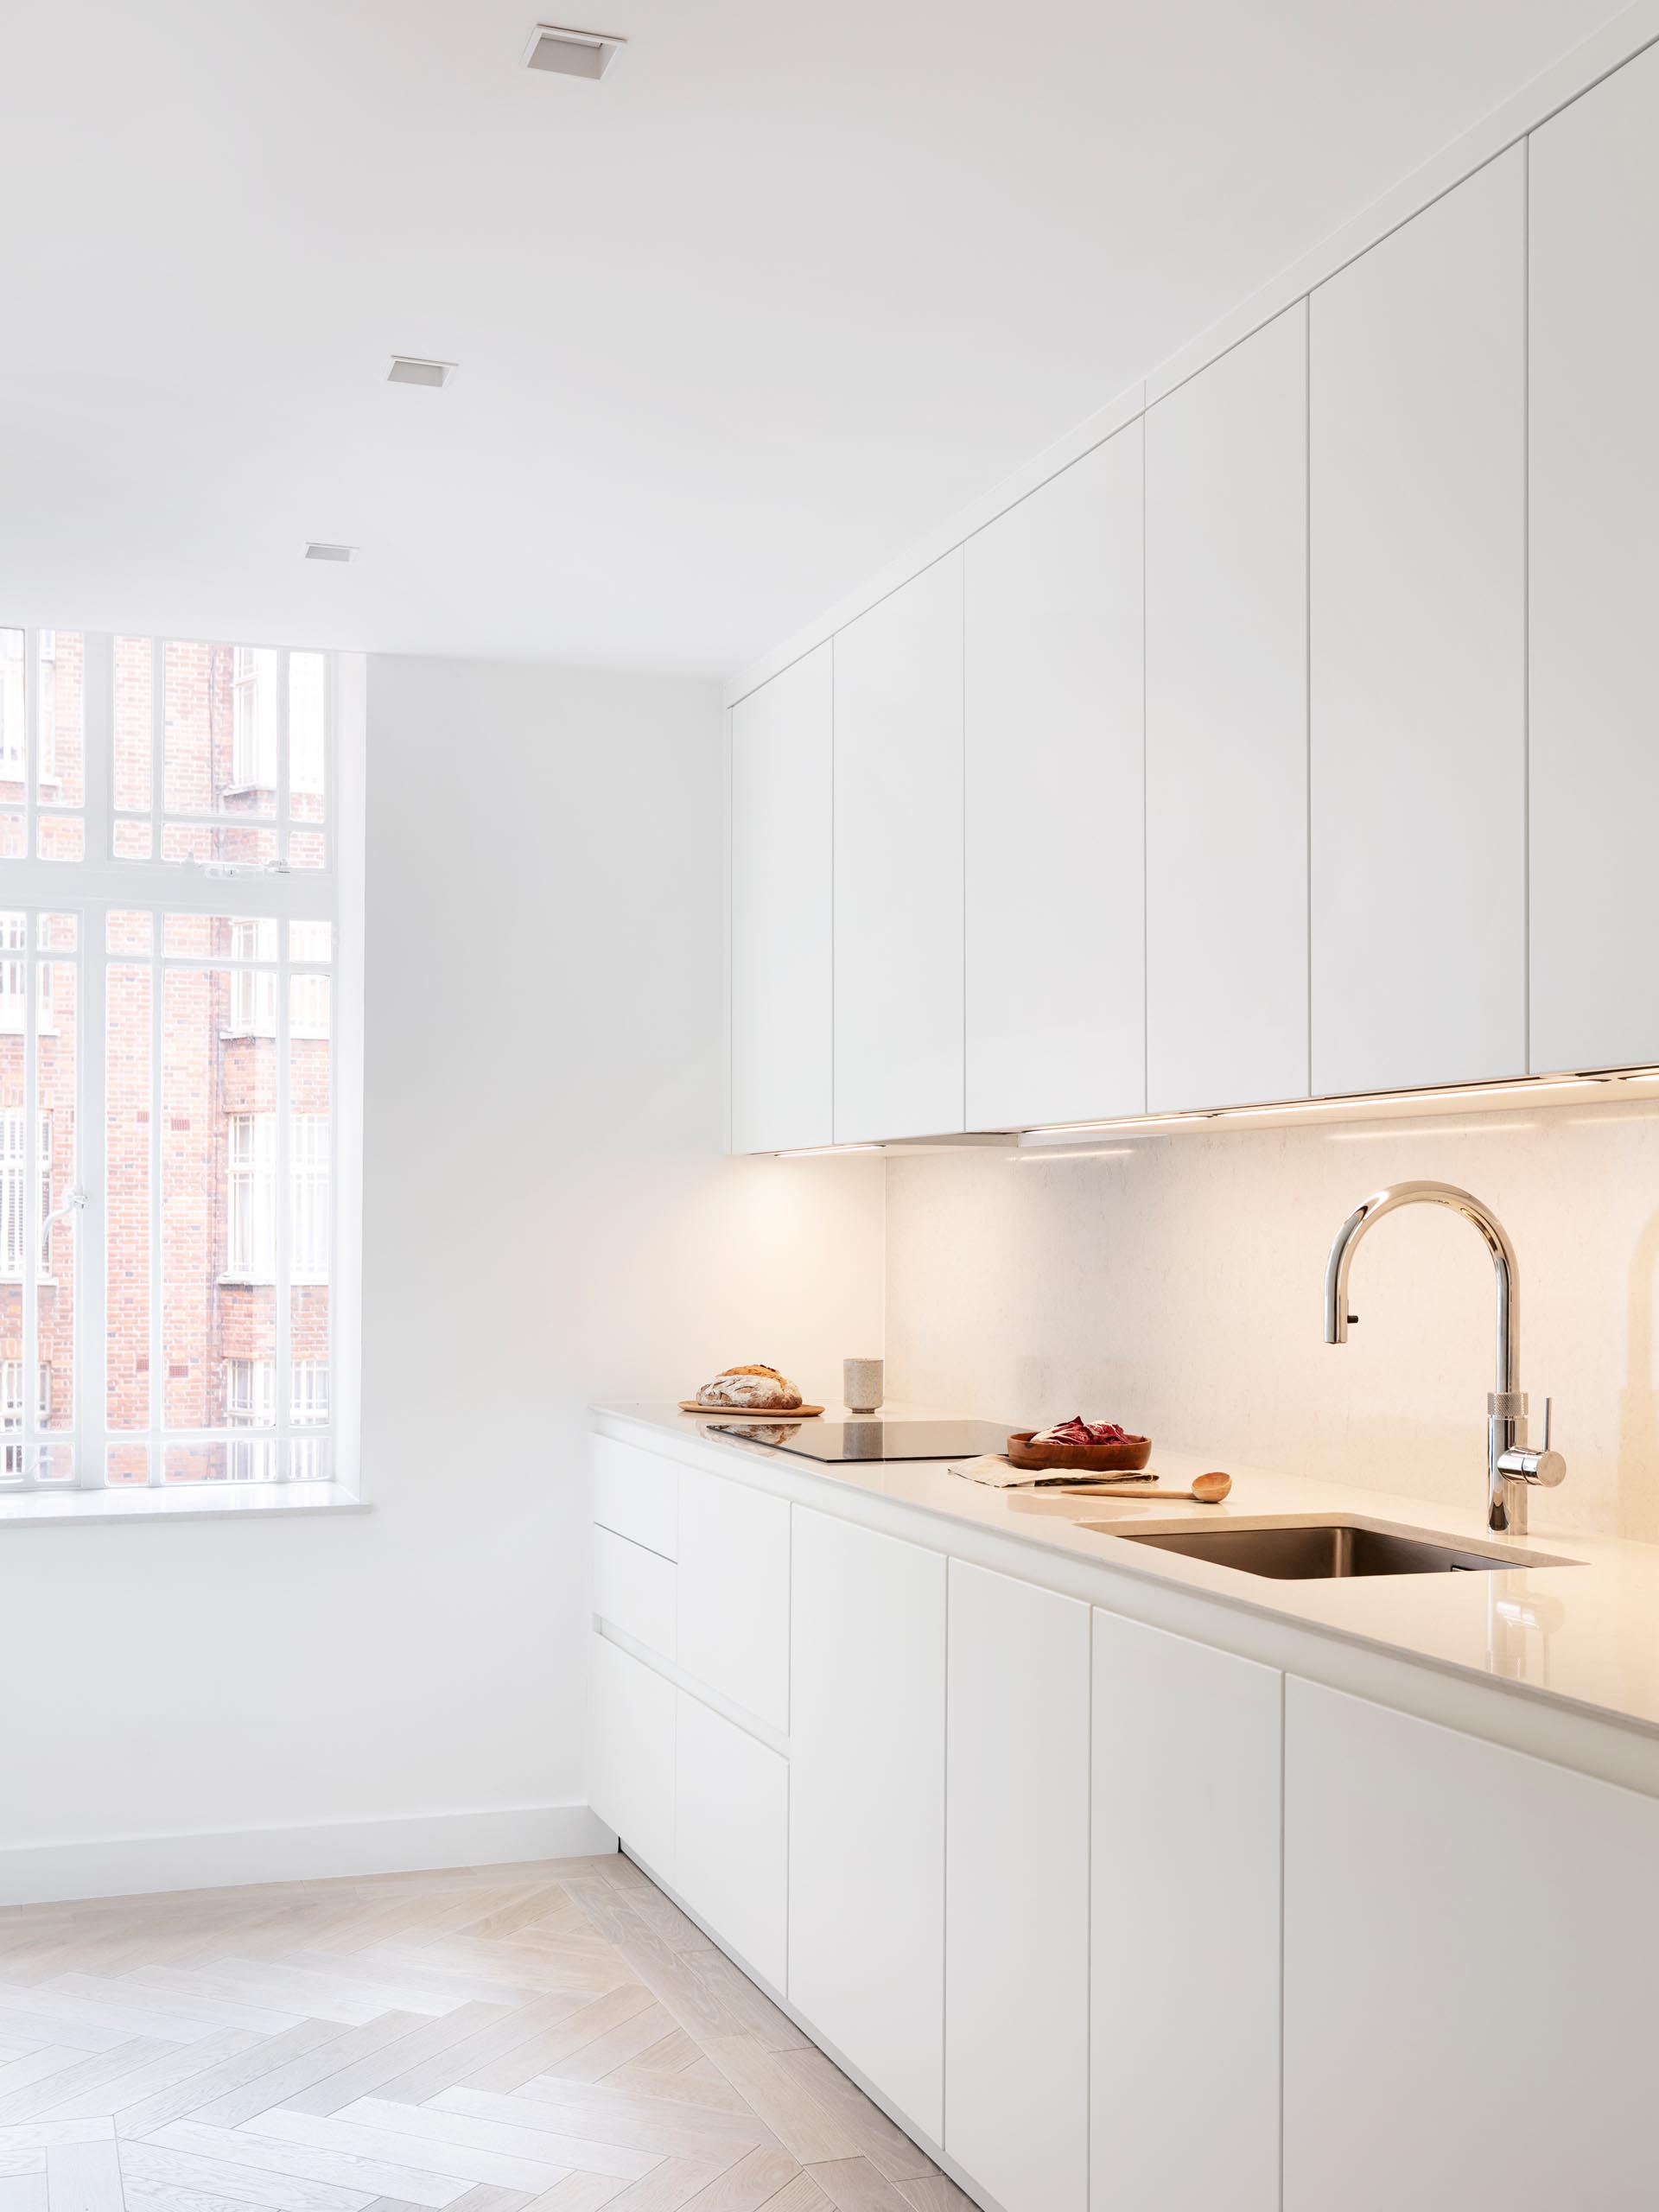 In this modern kitchen, lighting has been installed underneath the minimalist white cabinets, lighting the backsplash and countertop.